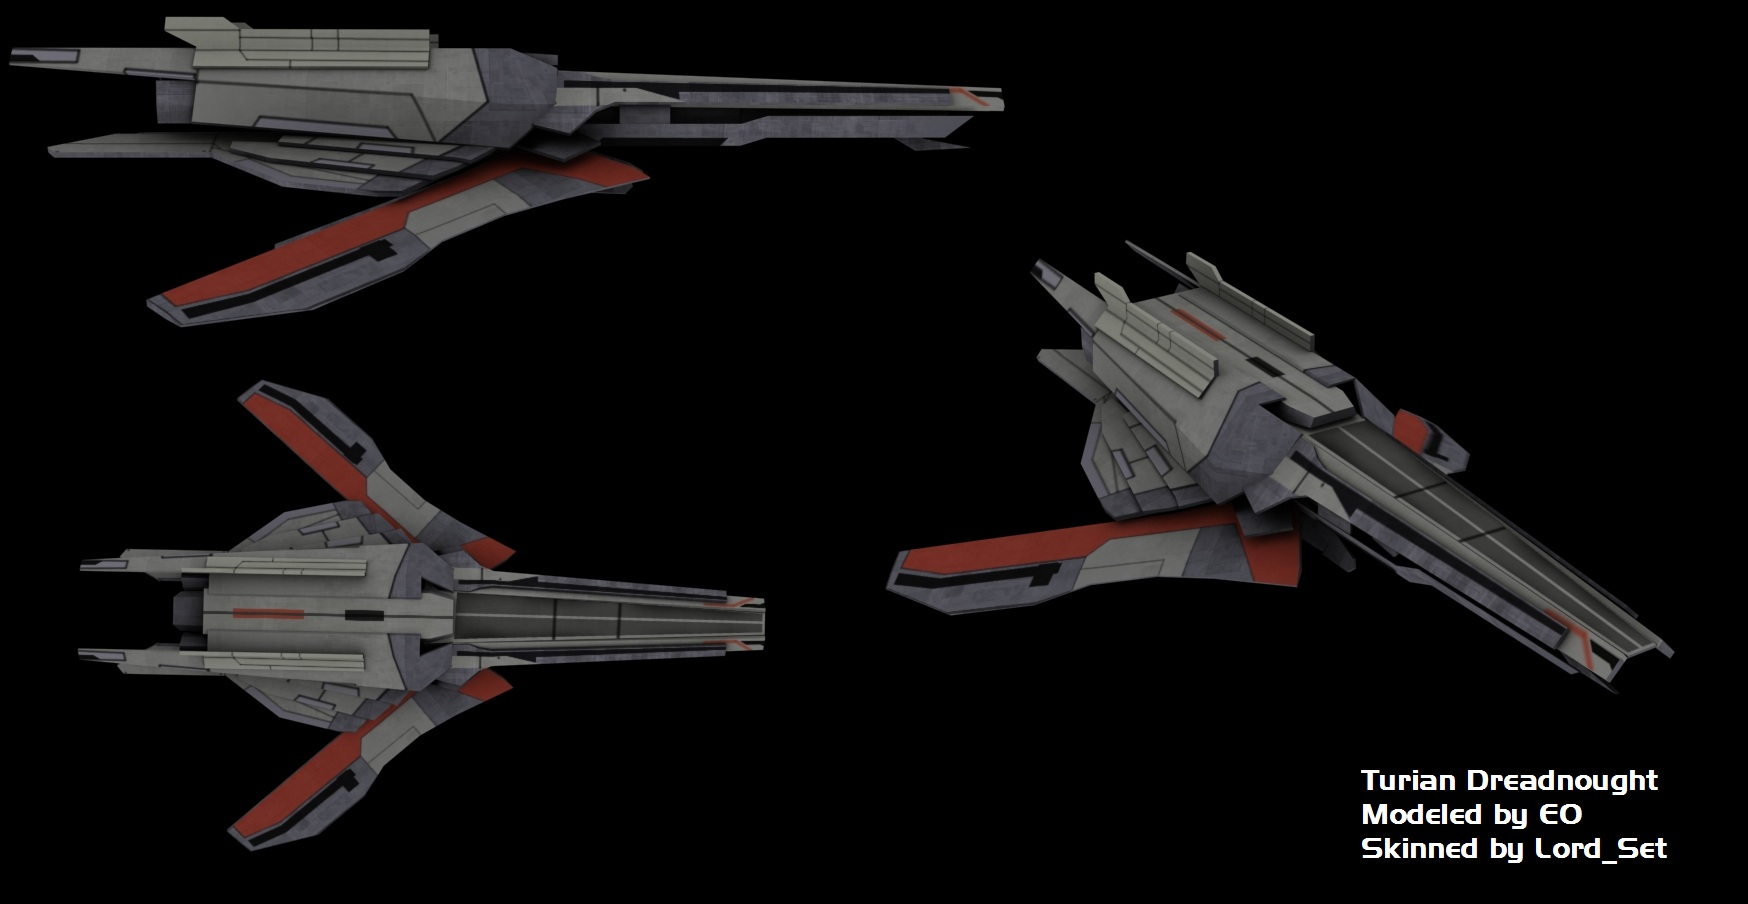 Turian Dreadnought Image Dawn Of The Reapers Mod For Sins Of A